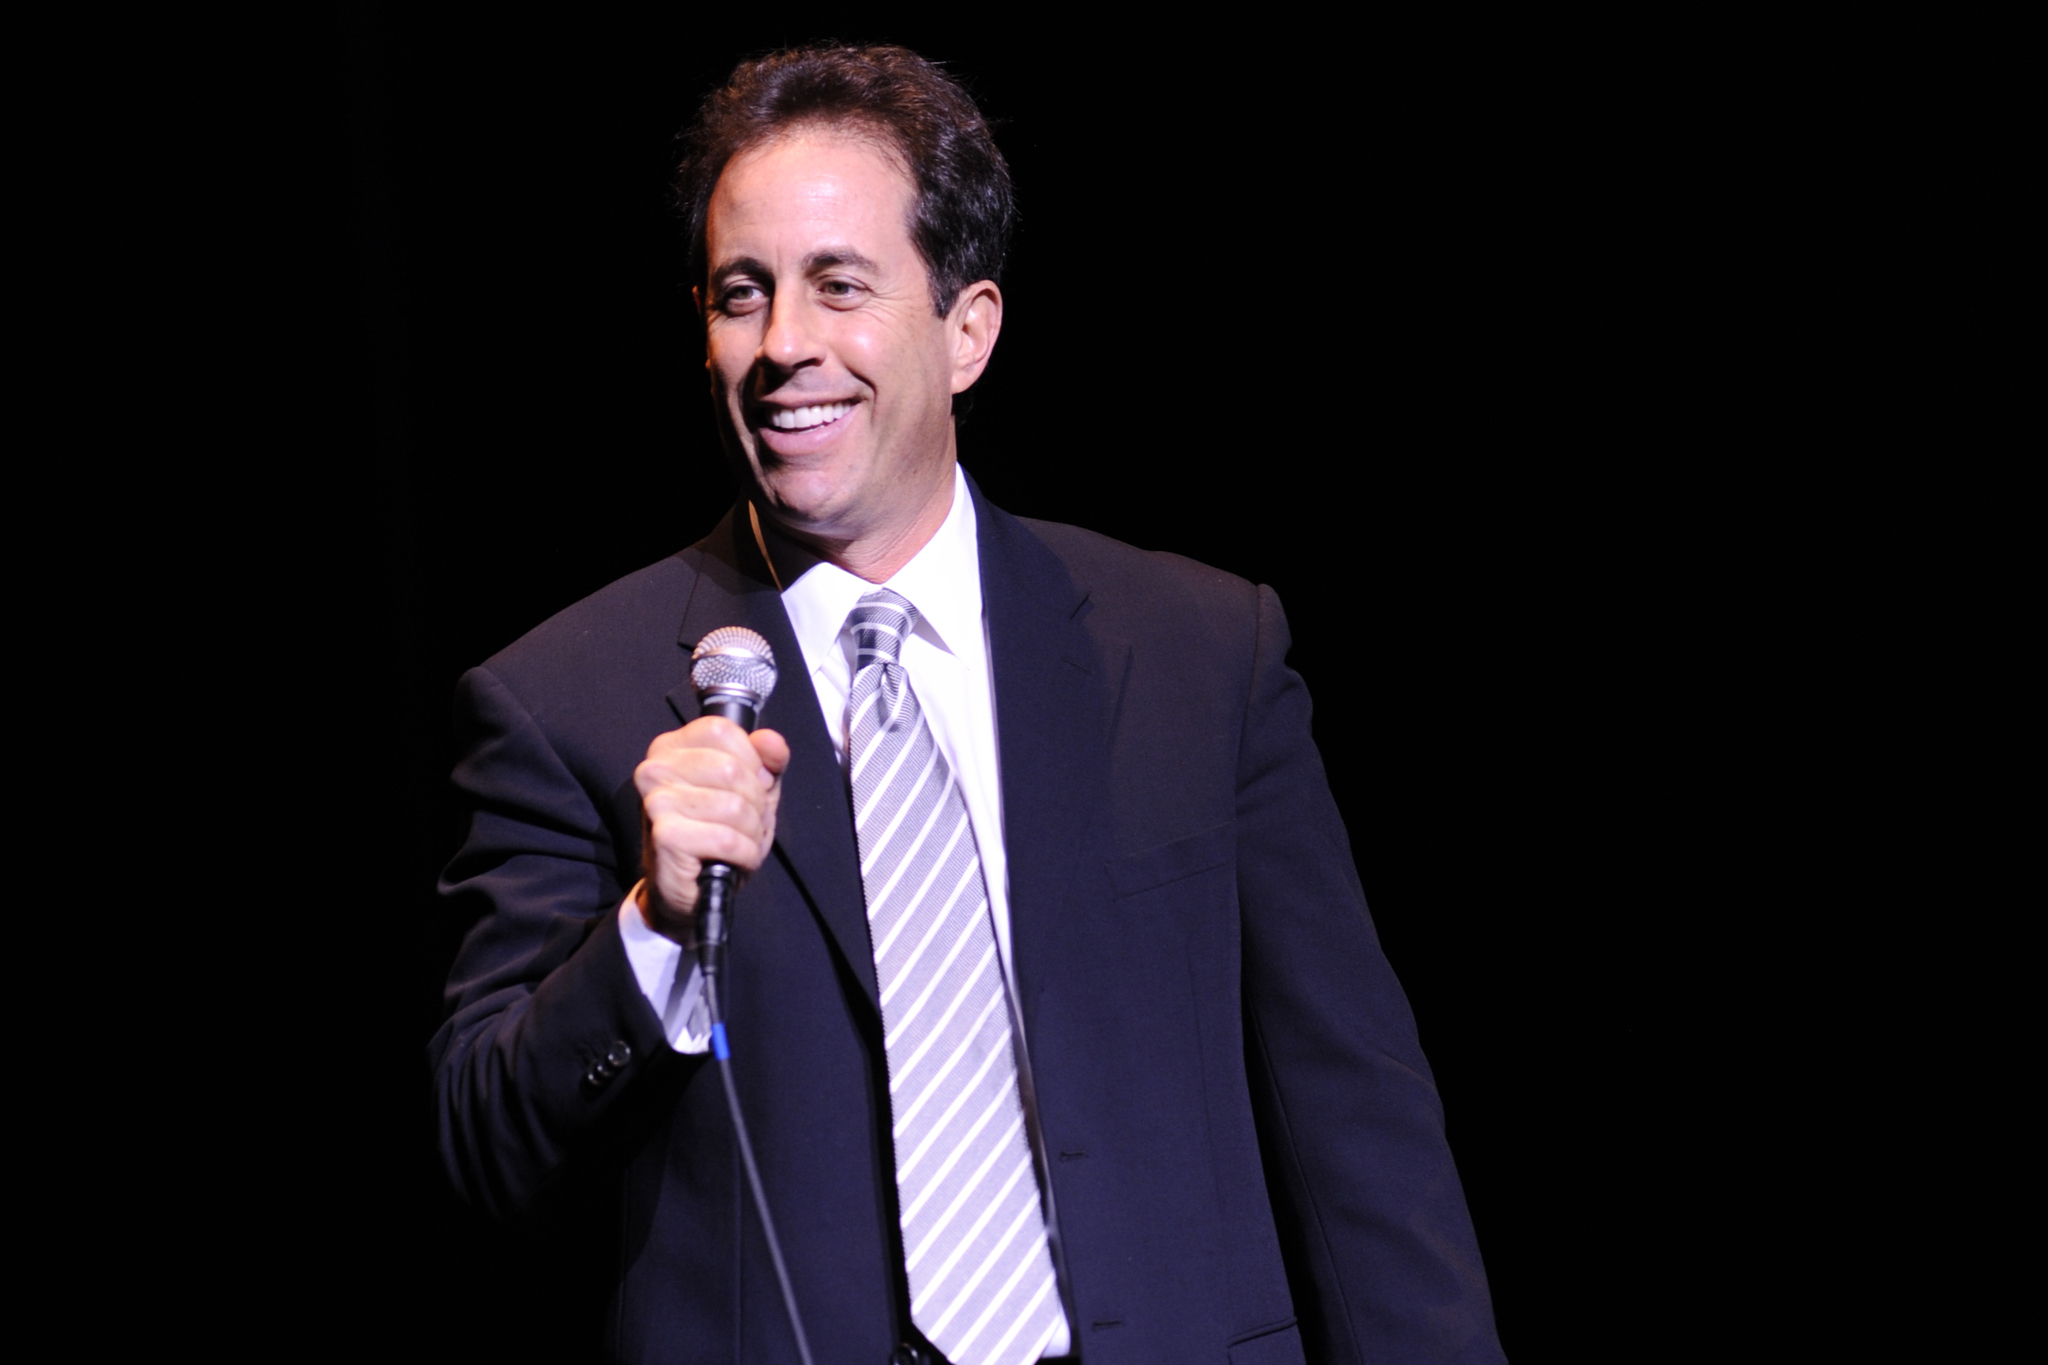 Jerry Seinfeld at Caesars Palace